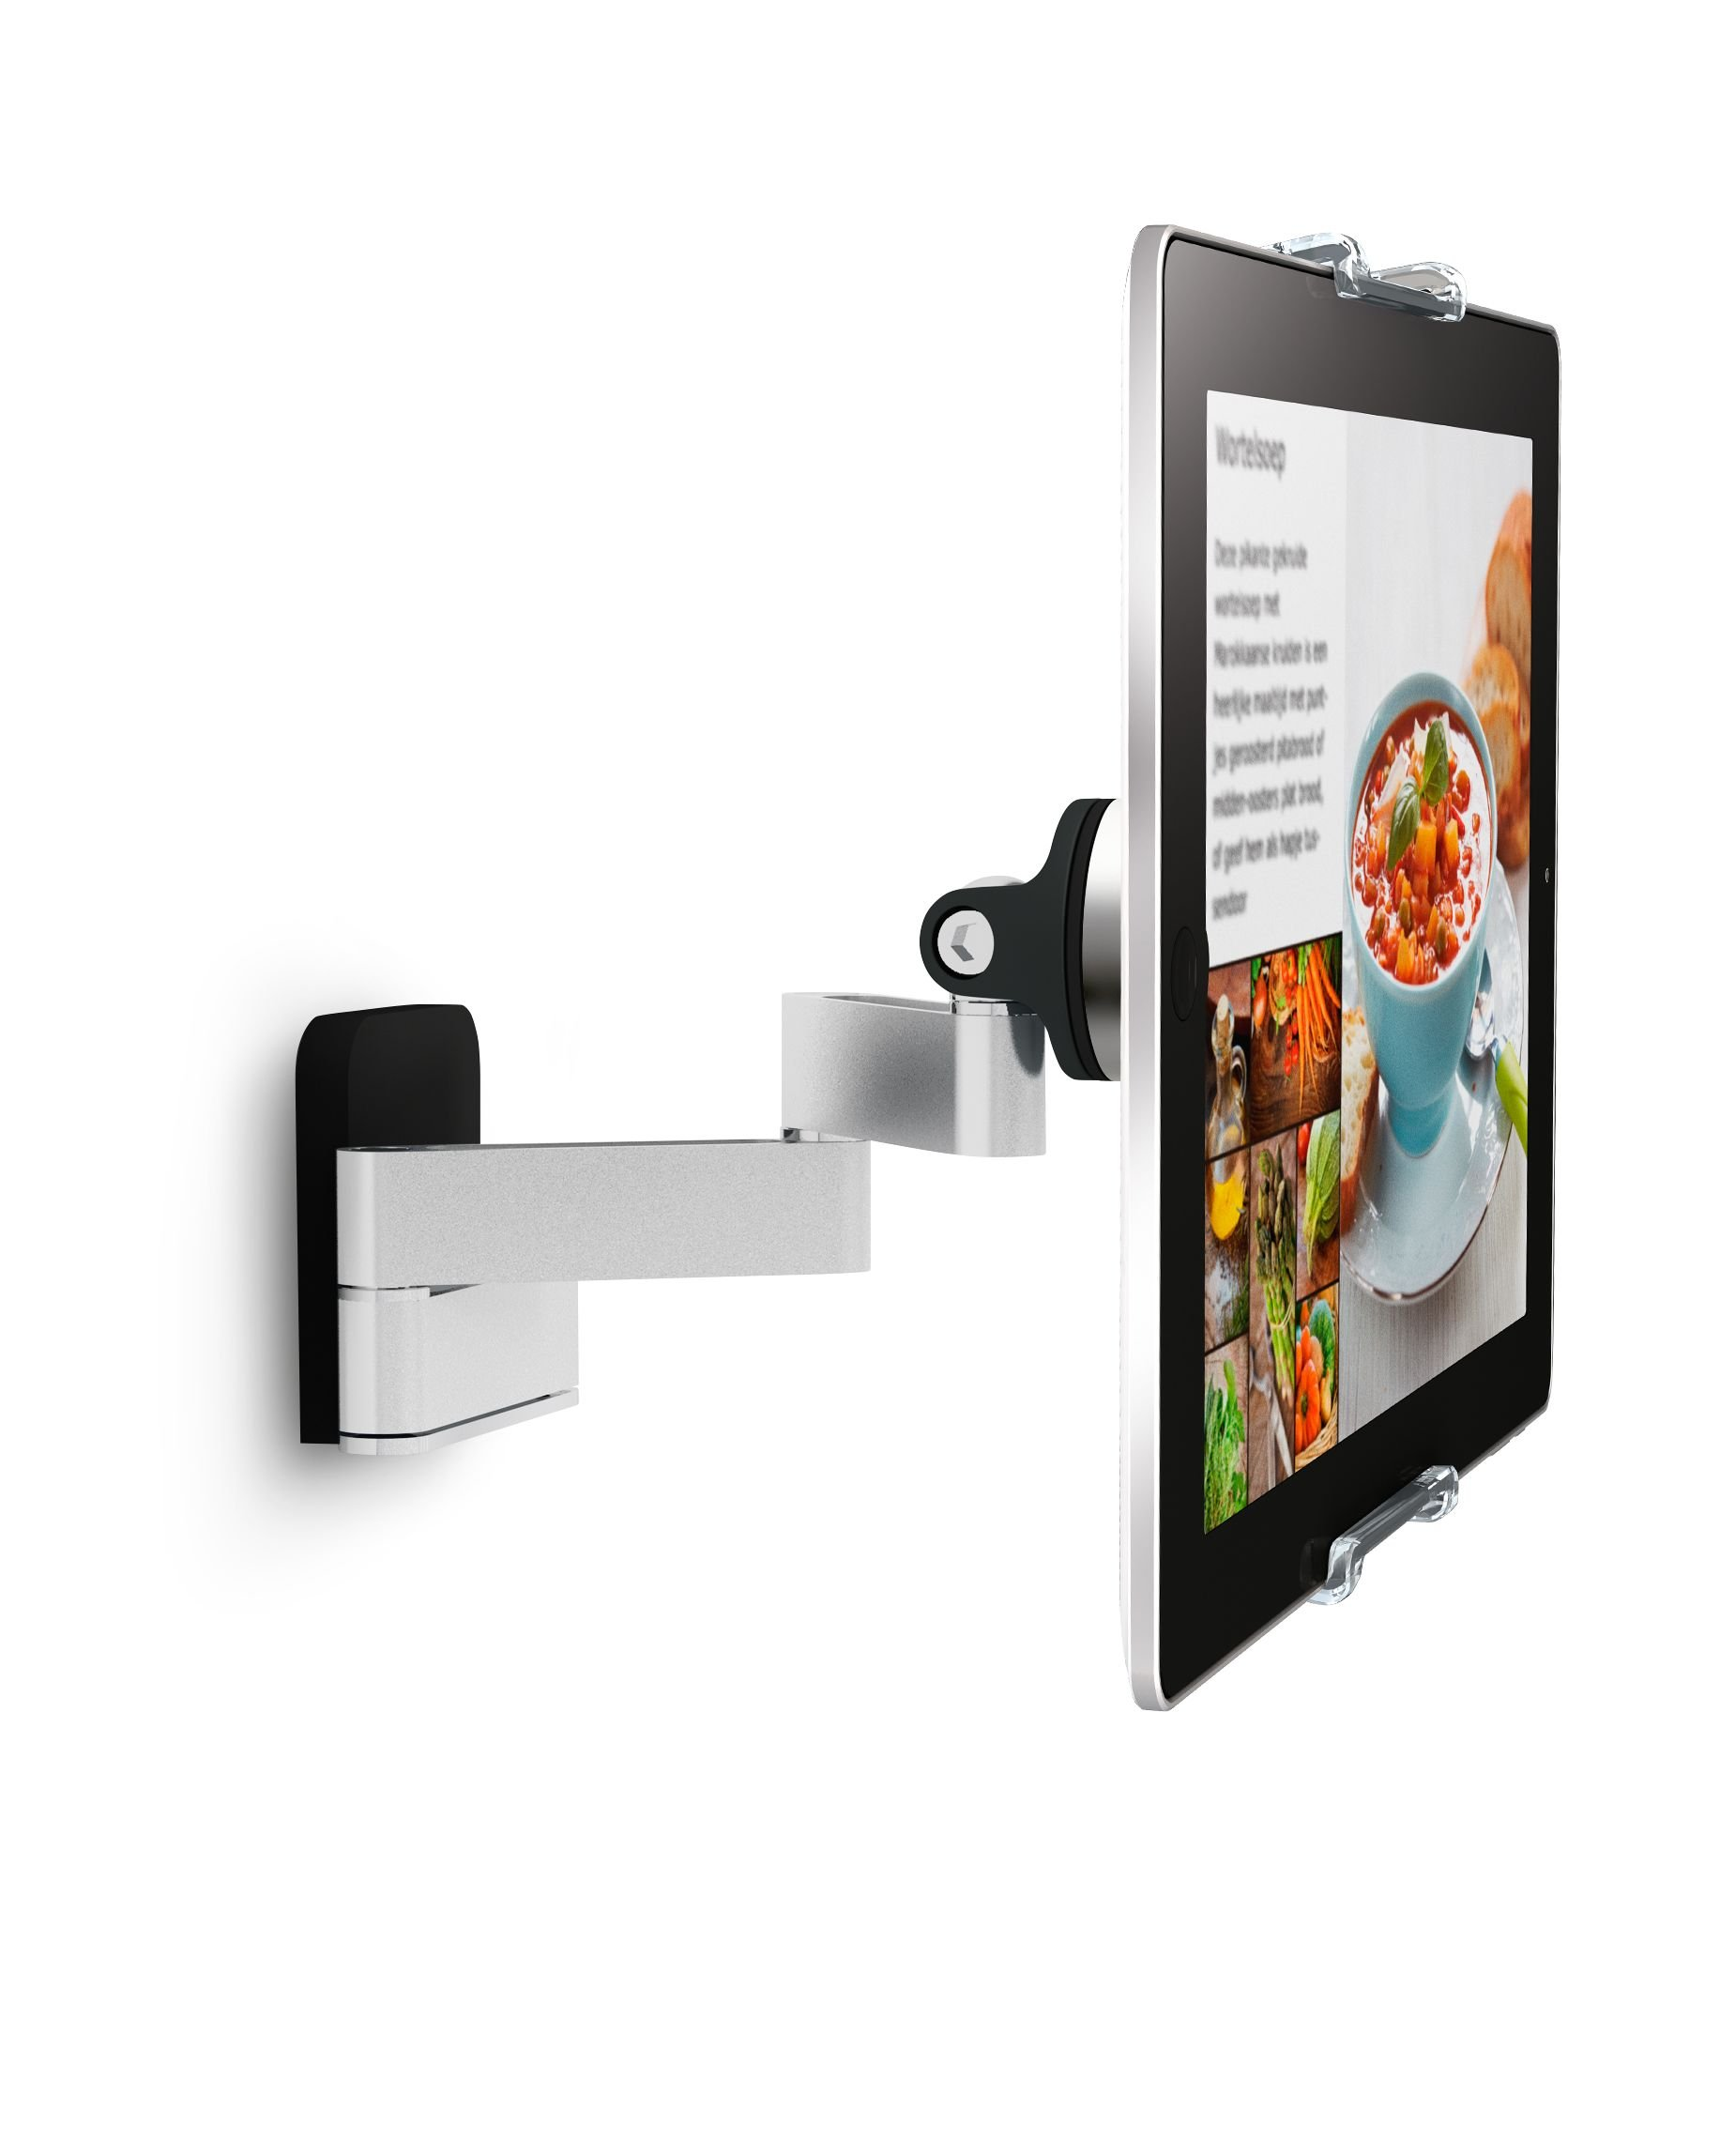 Vogel's Tablet iPad Mount, Universal Fit, Adjustable - TMS series, TMS 1030 Full Motion Swivel, Tilt and Rotating Wall Mount for Home